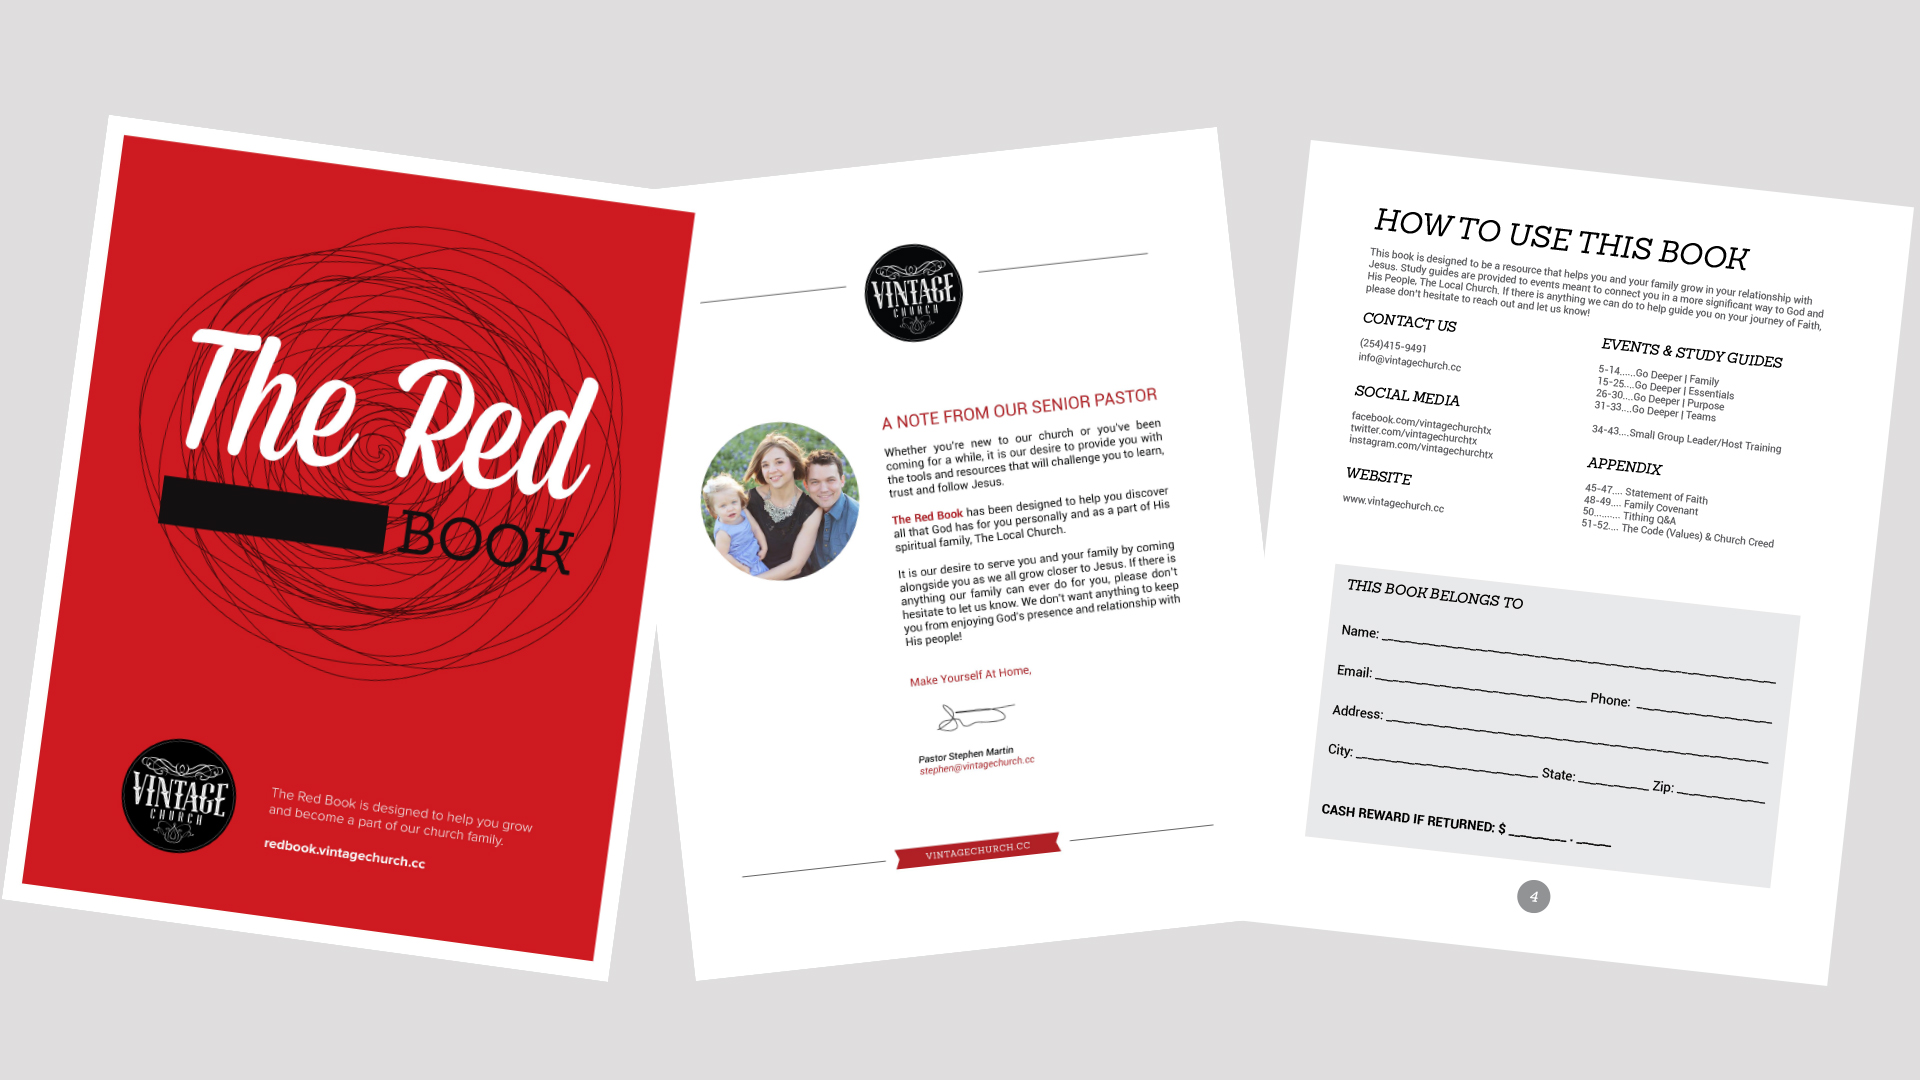 The Red Book (Growth Track Study Guides)